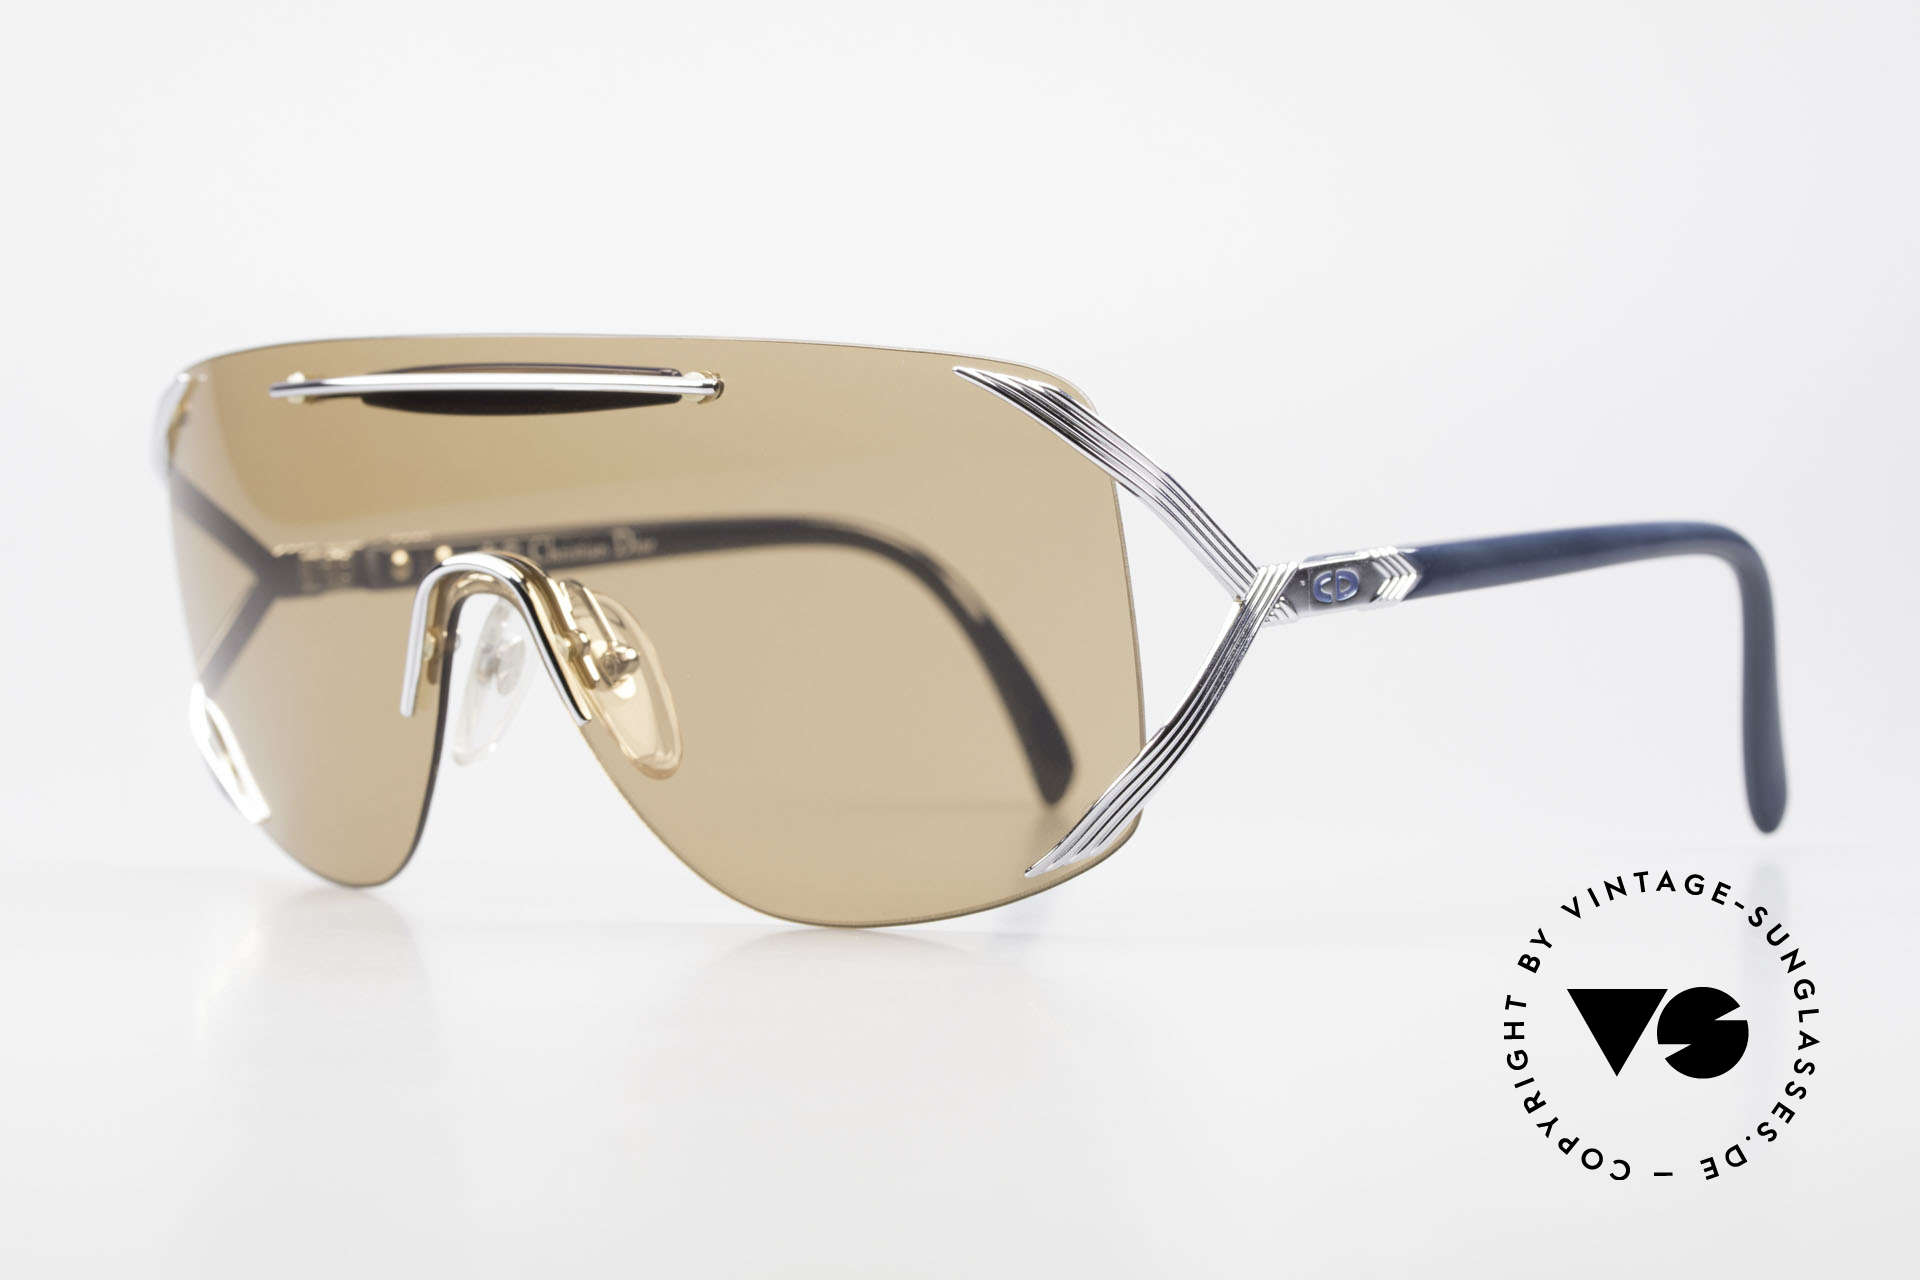 Christian Dior 2434 Panorama View Sunglasses 80s, brilliant and very rare vintage model by Chr. DIOR, Made for Women